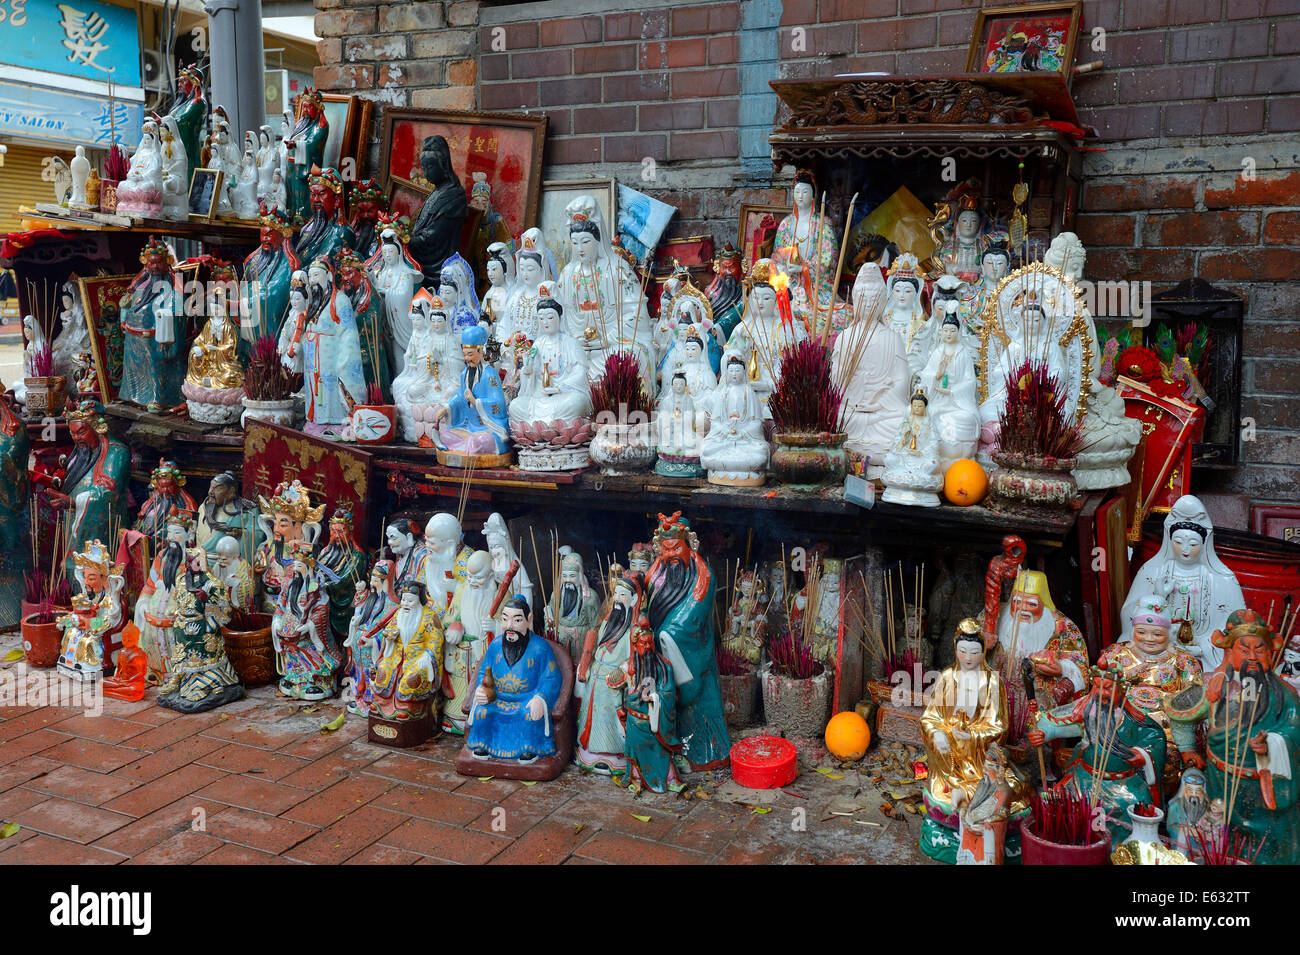 Adoration figures with incense on a small altar in the street, Kowloon, Hong Kong, China - Stock Image